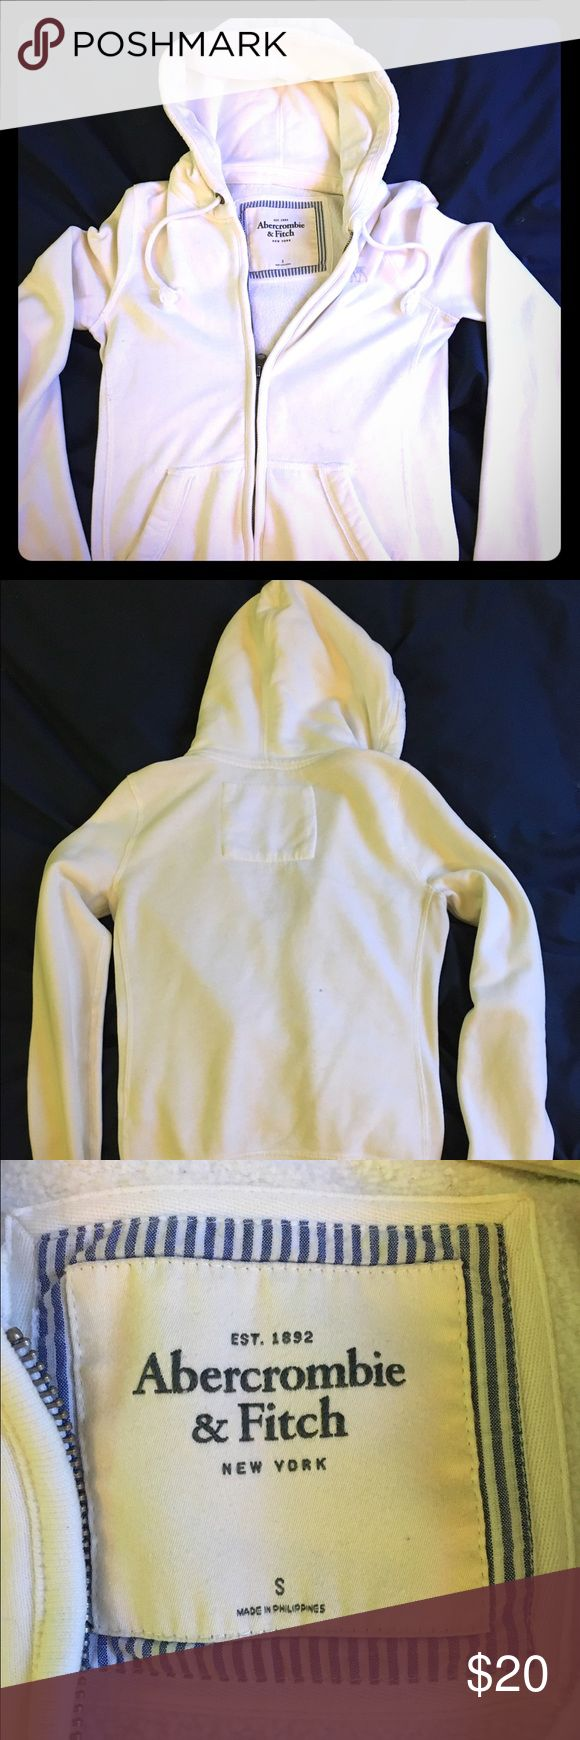 A&F women's white zip up hoodie Women's A&F white zip up hoodie, size Small US Abercrombie & Fitch Tops Sweatshirts & Hoodies